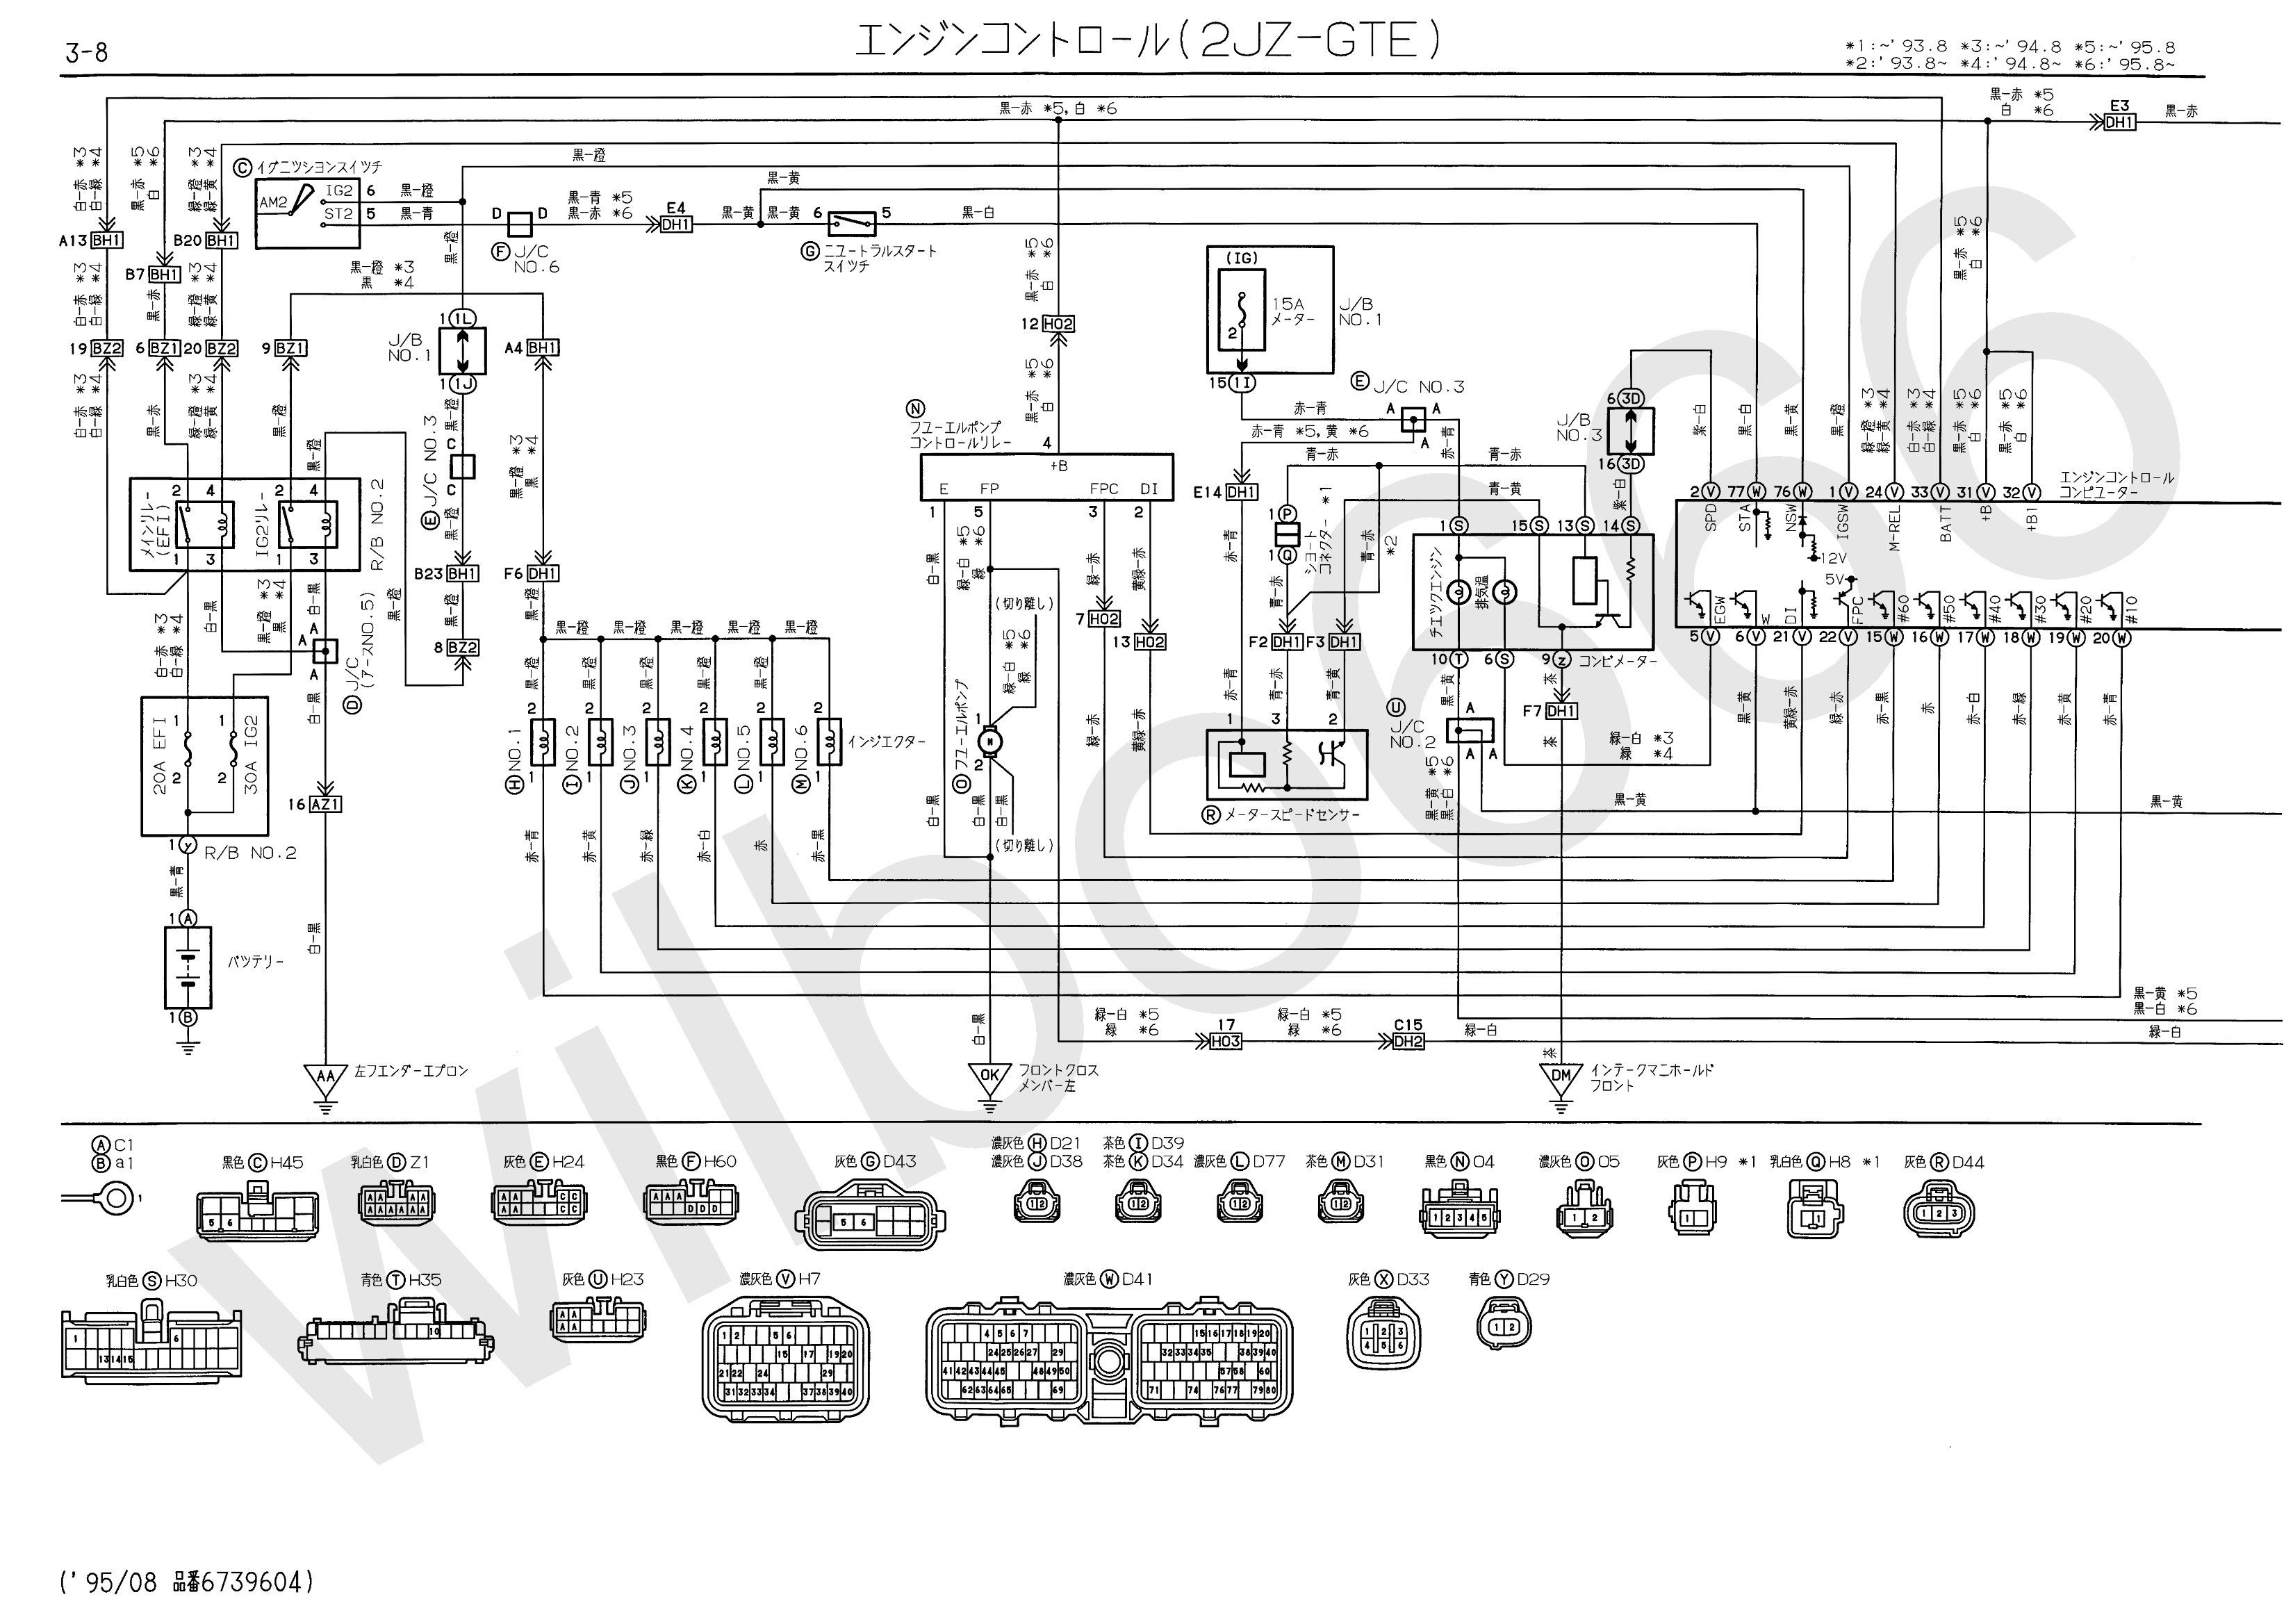 coolant temperature sensor wiring diagram awesome in 2020